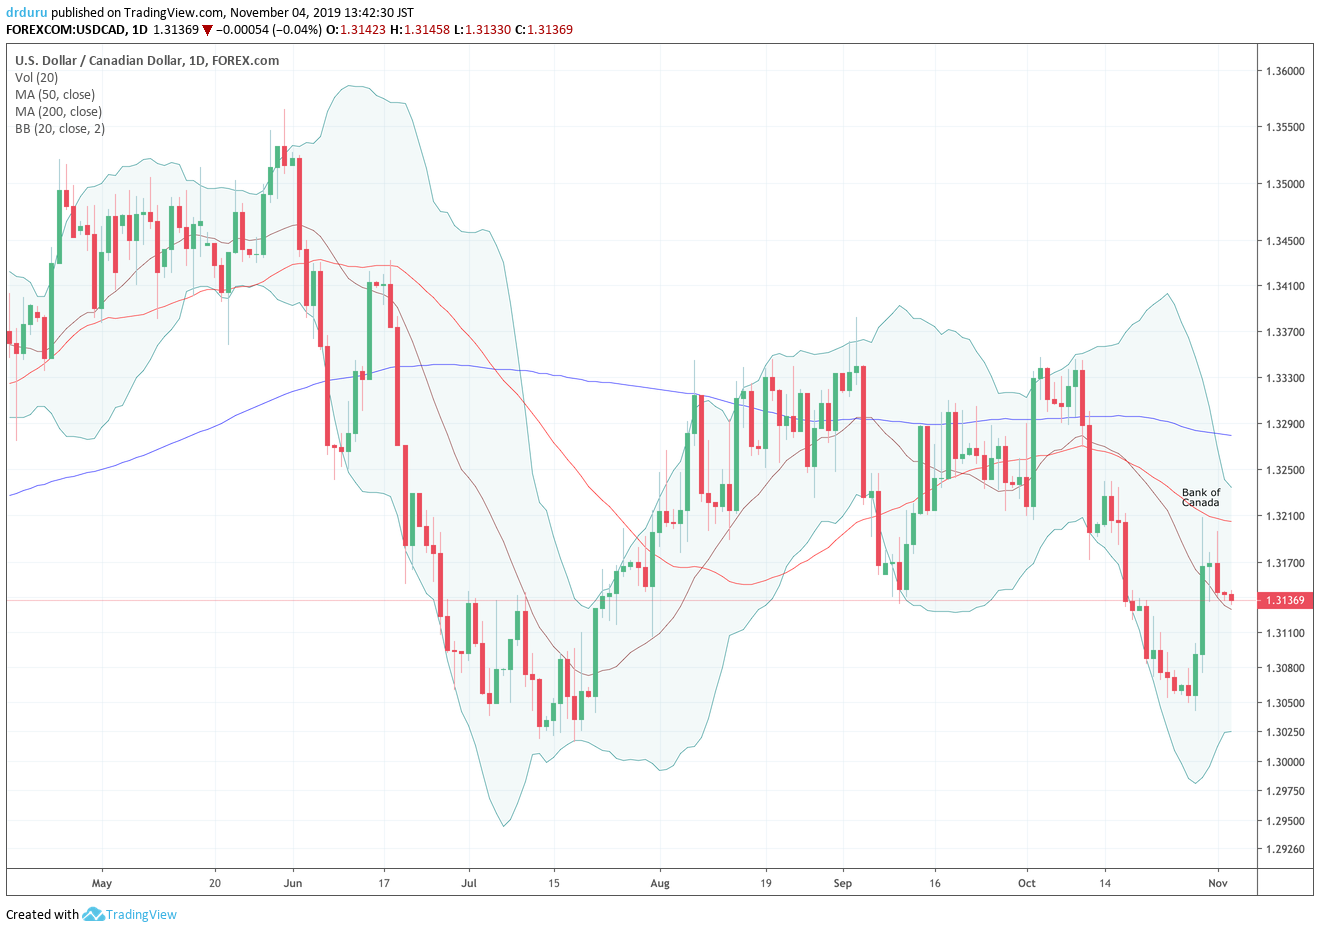 The U.S. dollar vs the Canadian dollar (USD/CAD) rallied into its 50-day moving average (DMA) and faded from there.